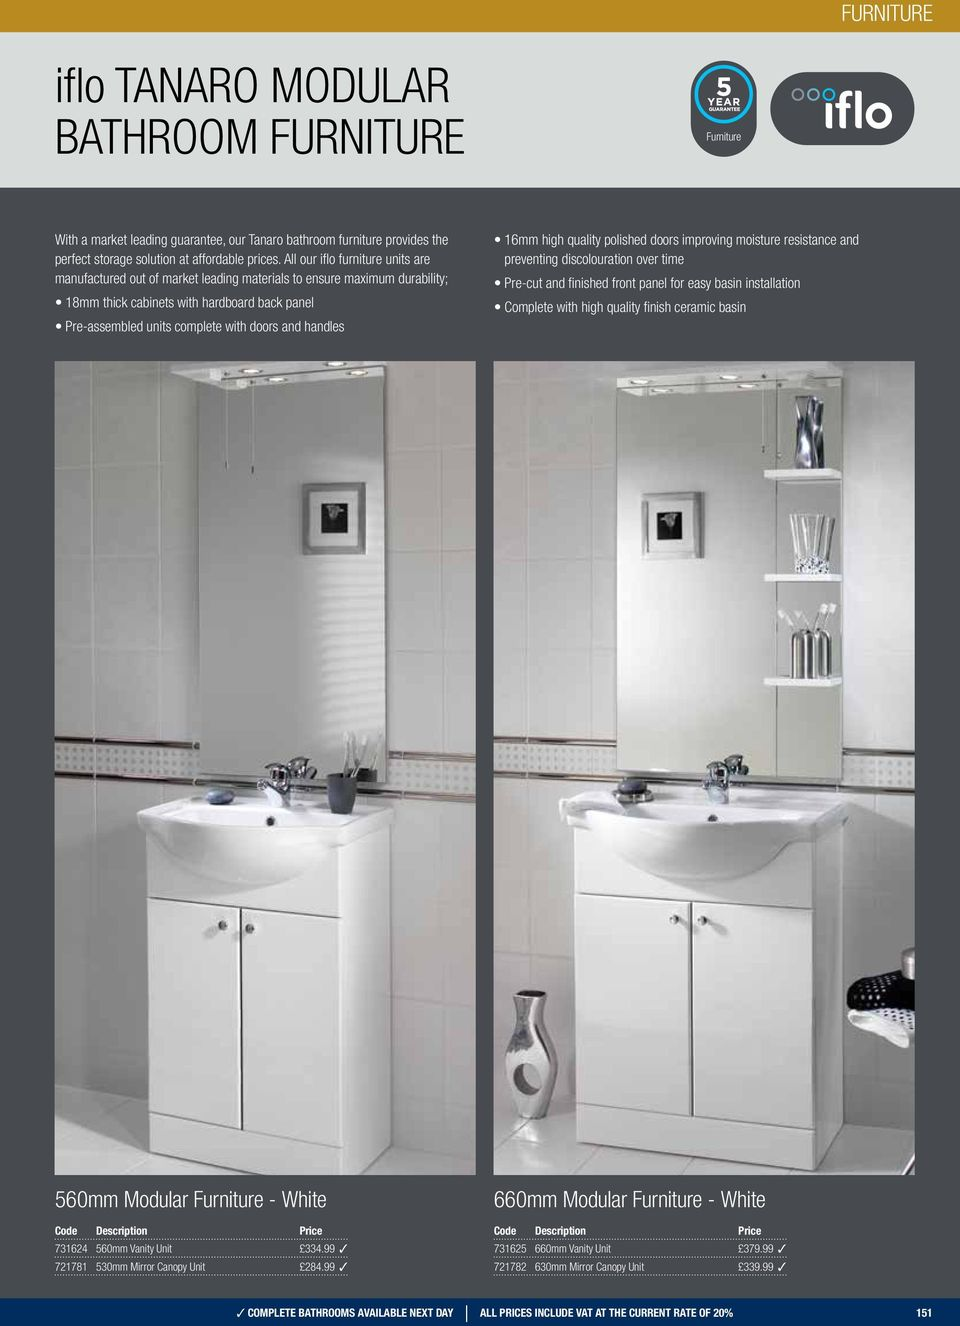 handles 16mm high quality polished doors improving moisture resistance and preventing discolouration over time Pre-cut and finished front panel for easy basin installation Complete with high quality